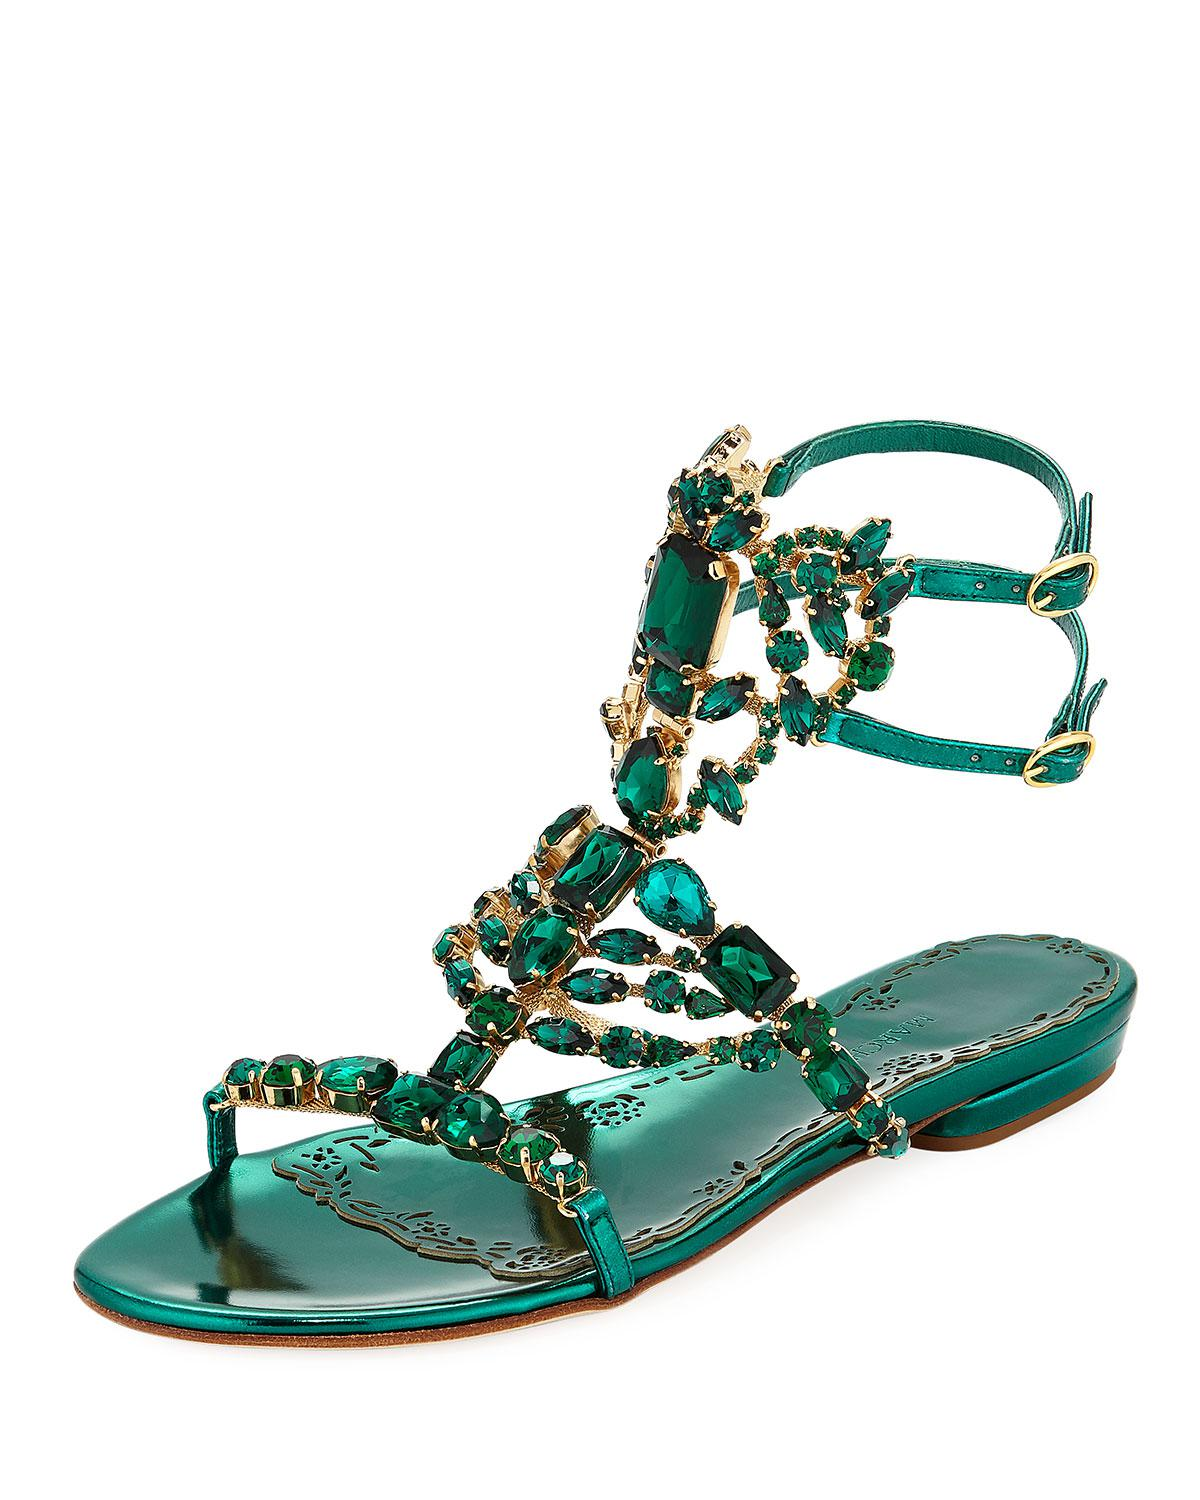 89487f0ac14e Lyst marchesa emily jeweled flat sandals in green jpg 1200x1500 Green flat  sandals for women